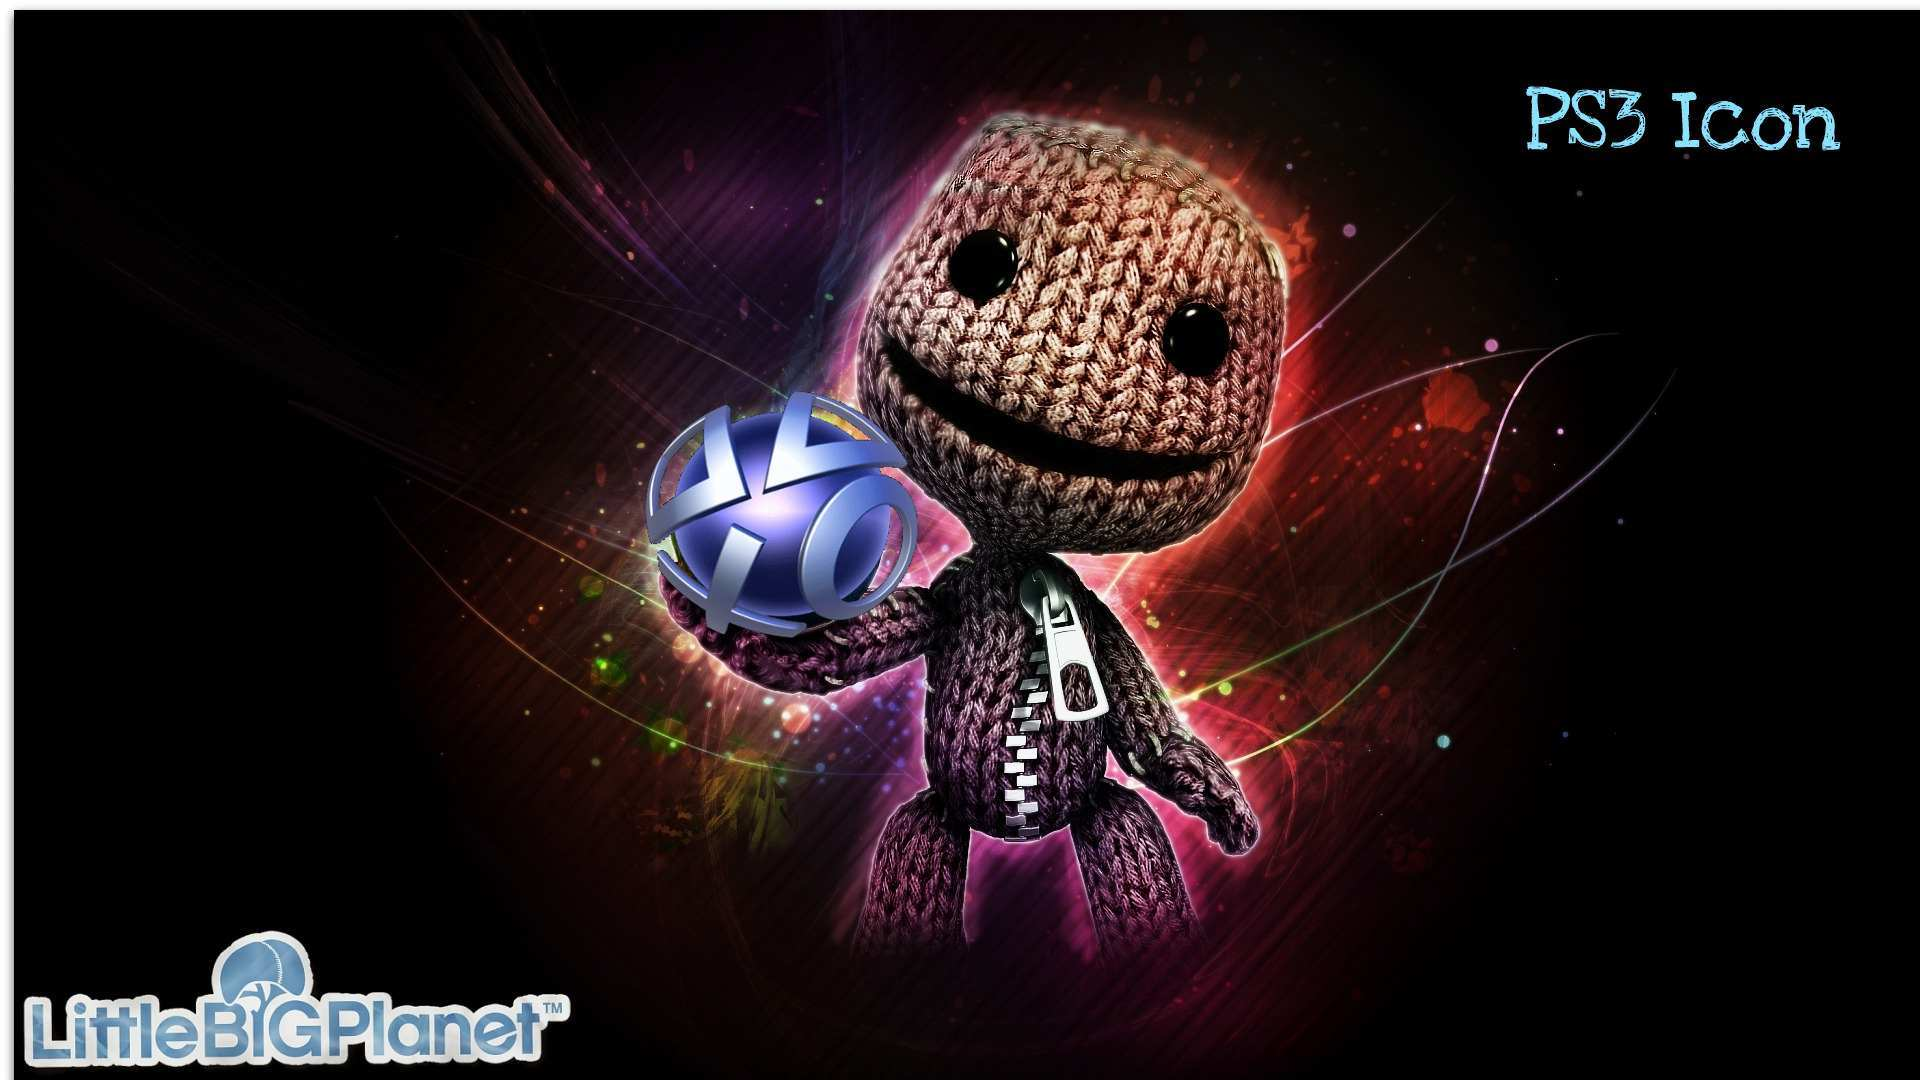 LittleBigPlanet - PS3 Icon Wallpapers